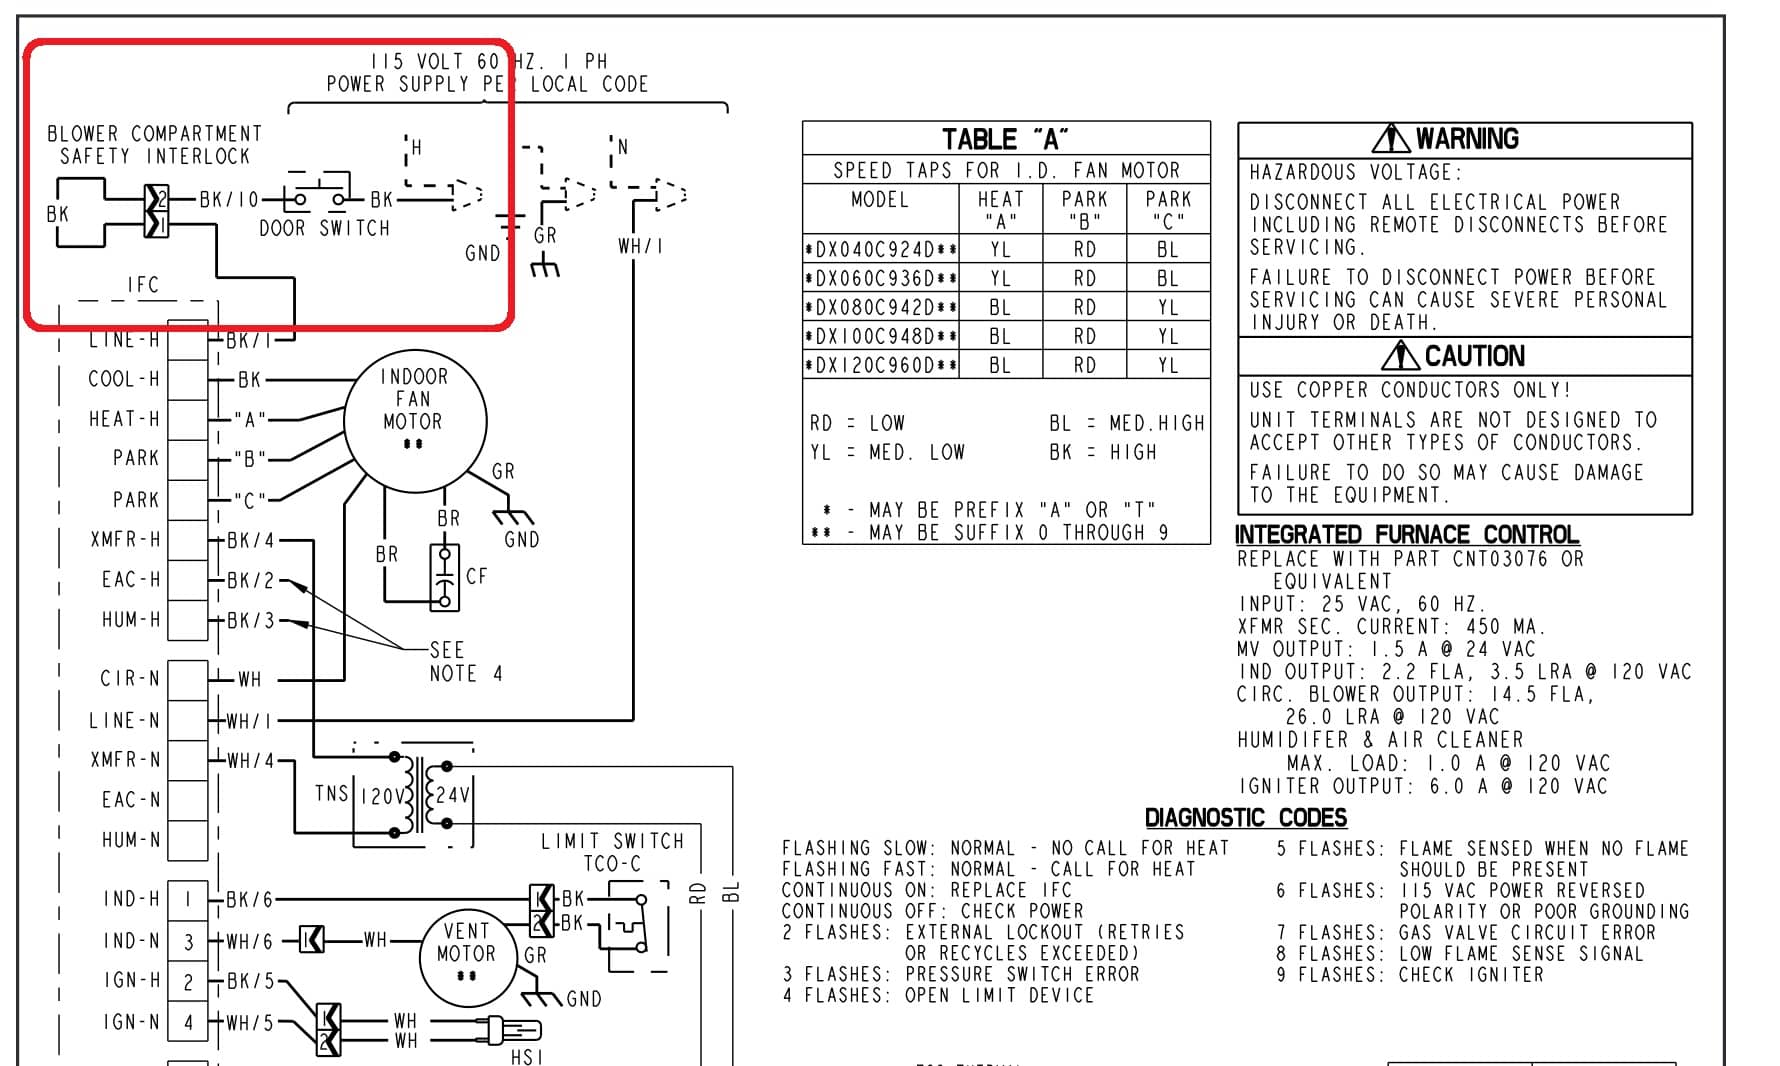 Trane_Furnace_Wiring_PARTIAL_023 trane xr90 wiring diagram trane xr90 owners manual \u2022 wiring trane xe90 wiring diagram at virtualis.co